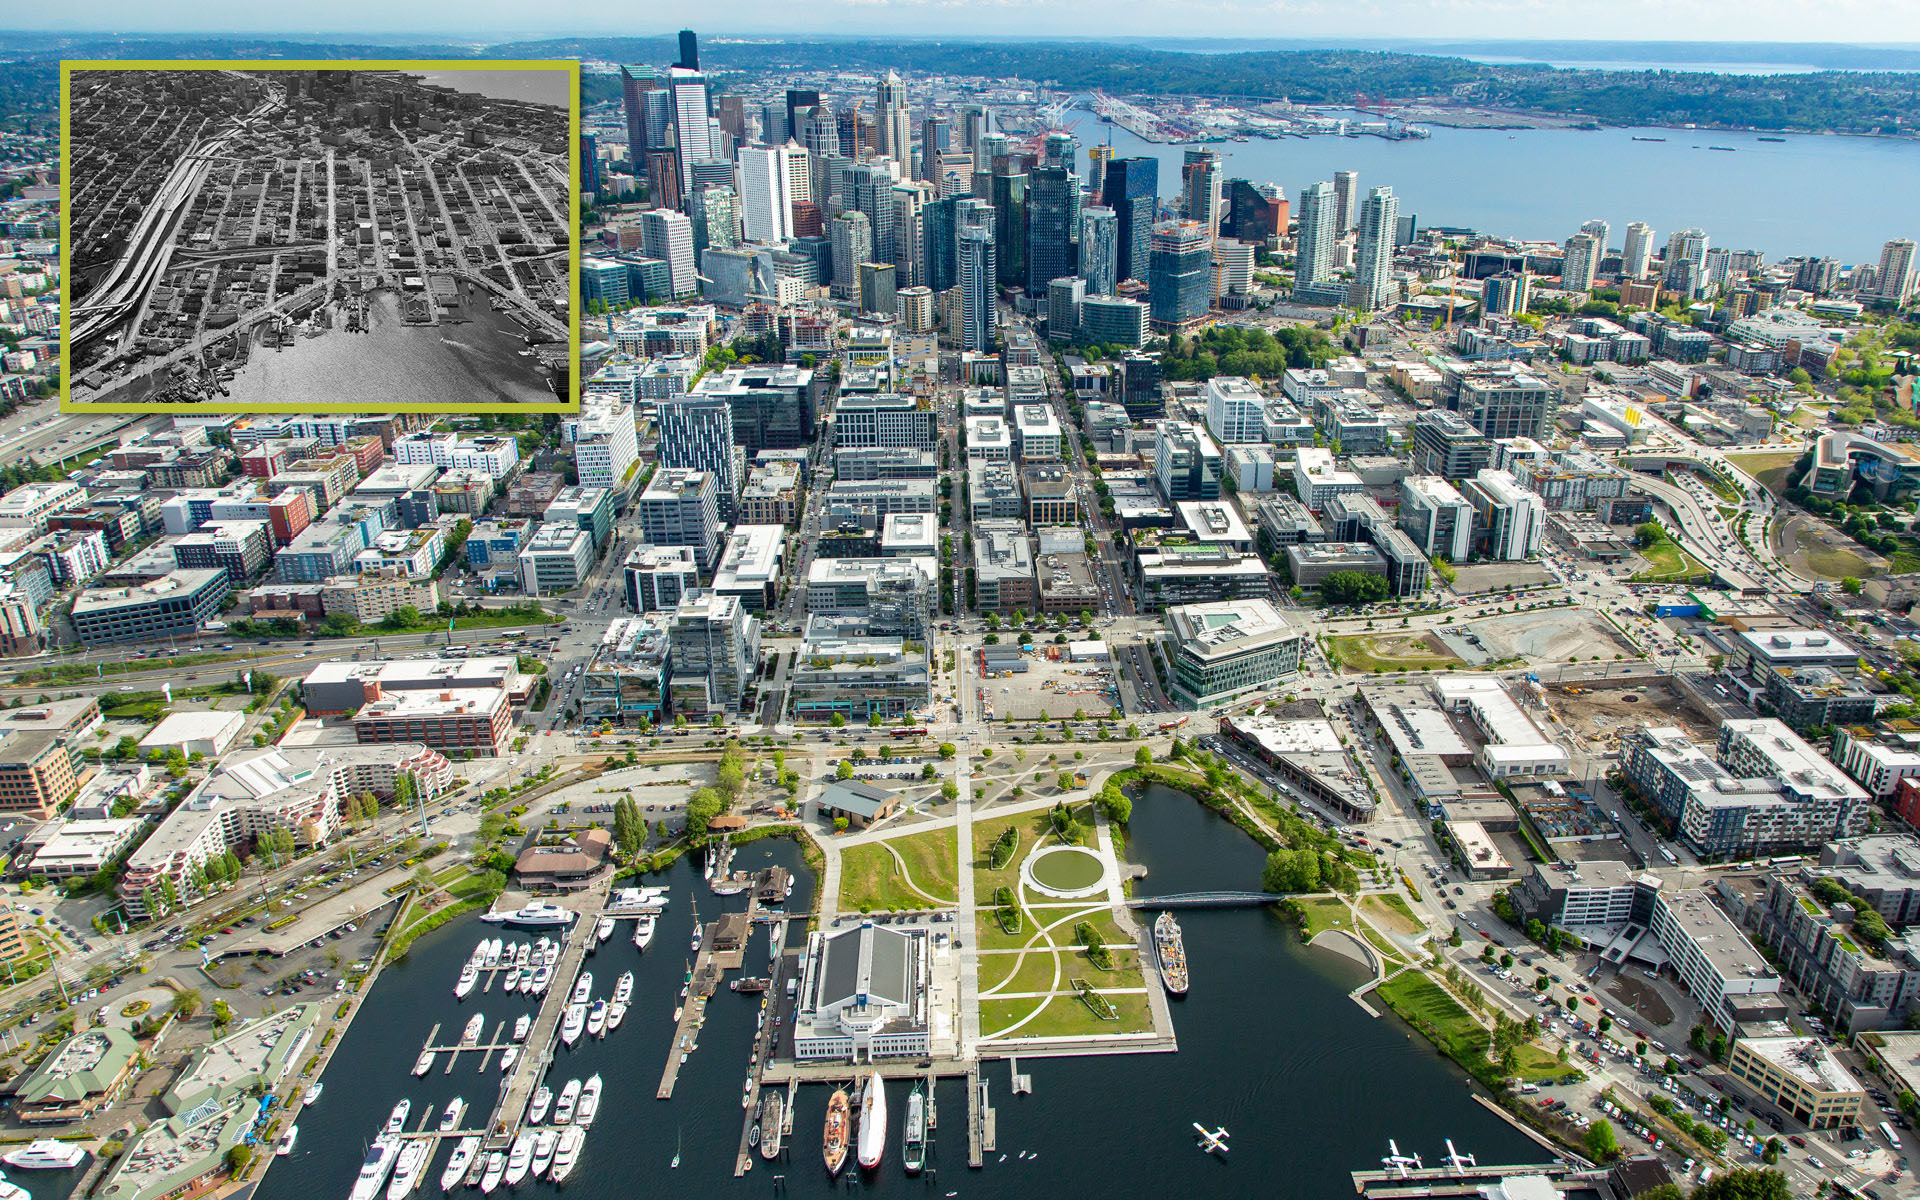 Before & After Aerials of South Lake Union